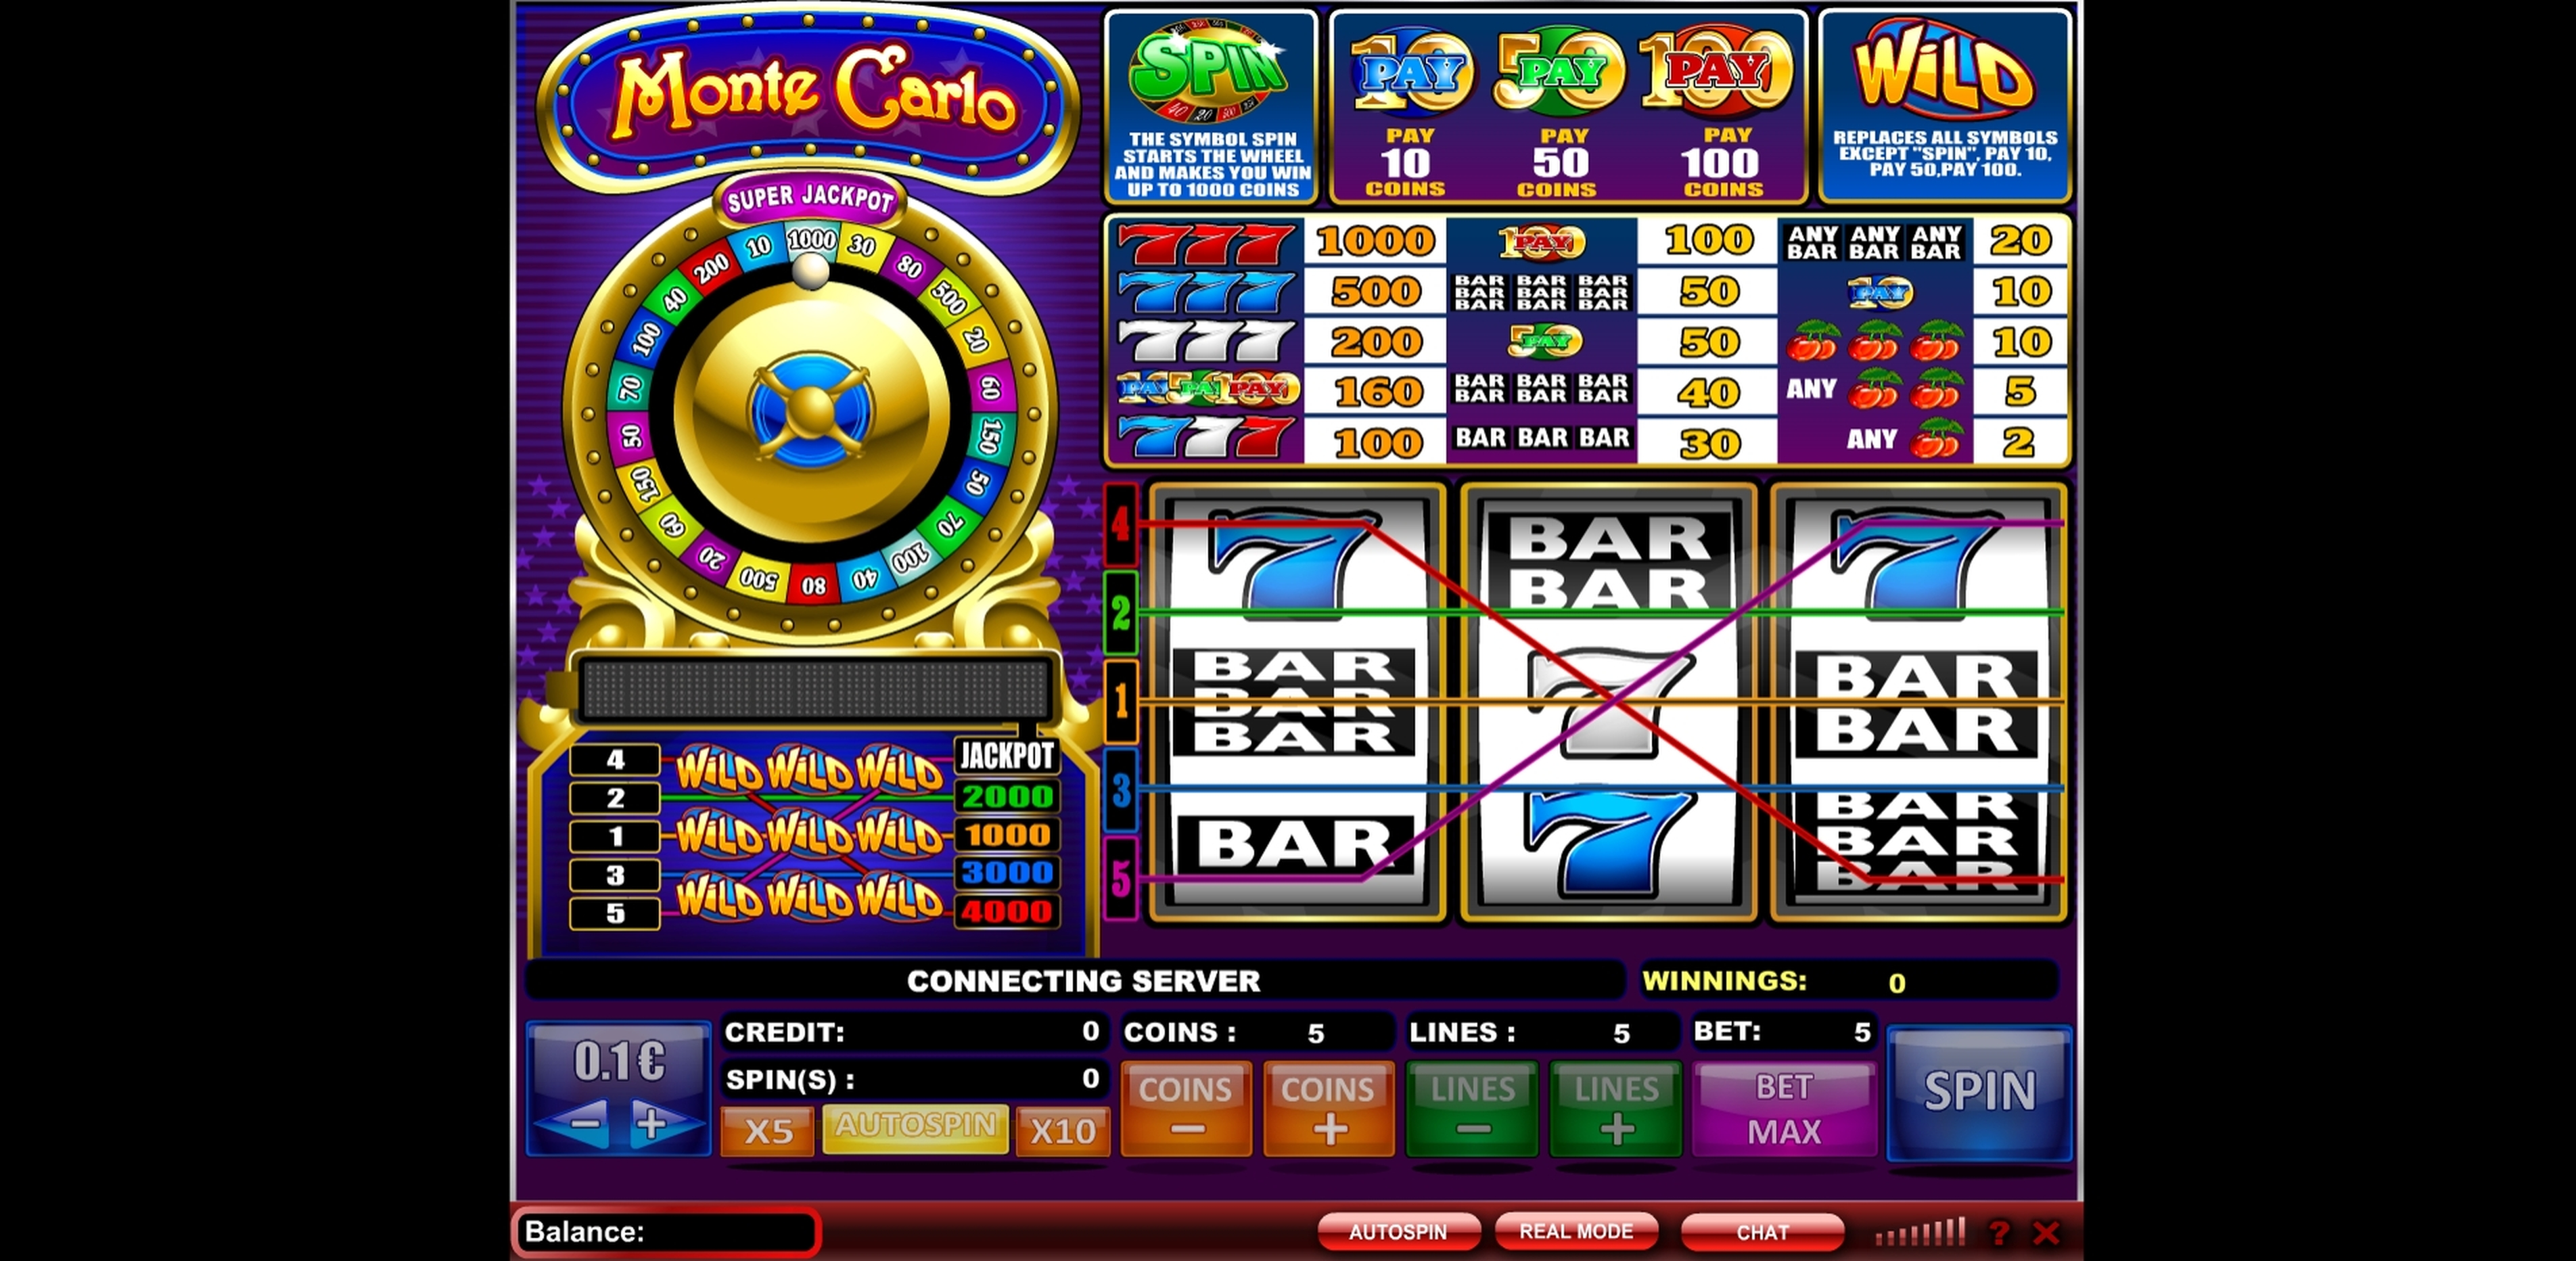 Reels in Monte Carlo (NeoGames) Slot Game by NeoGames